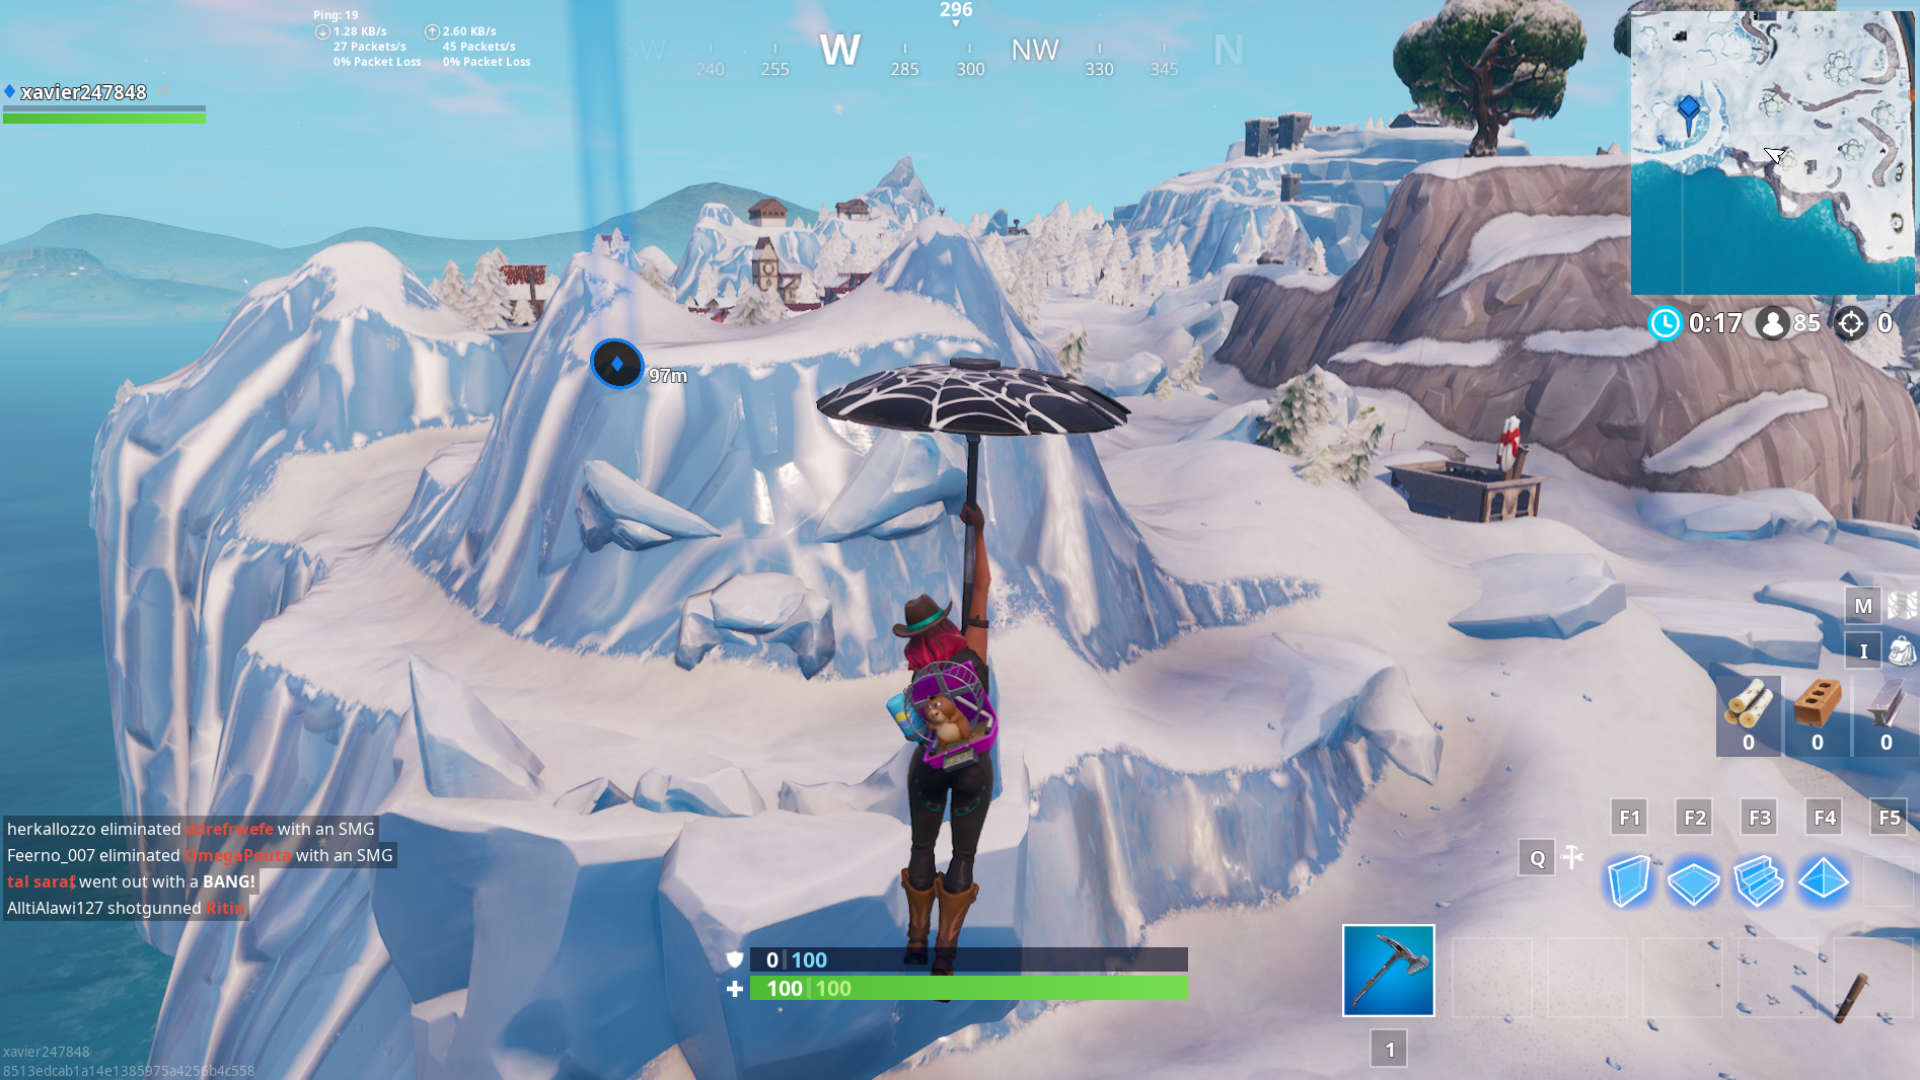 fortnite snow giant face screenshot - visit a giant face in the desert jungle and snow fortnite challenge